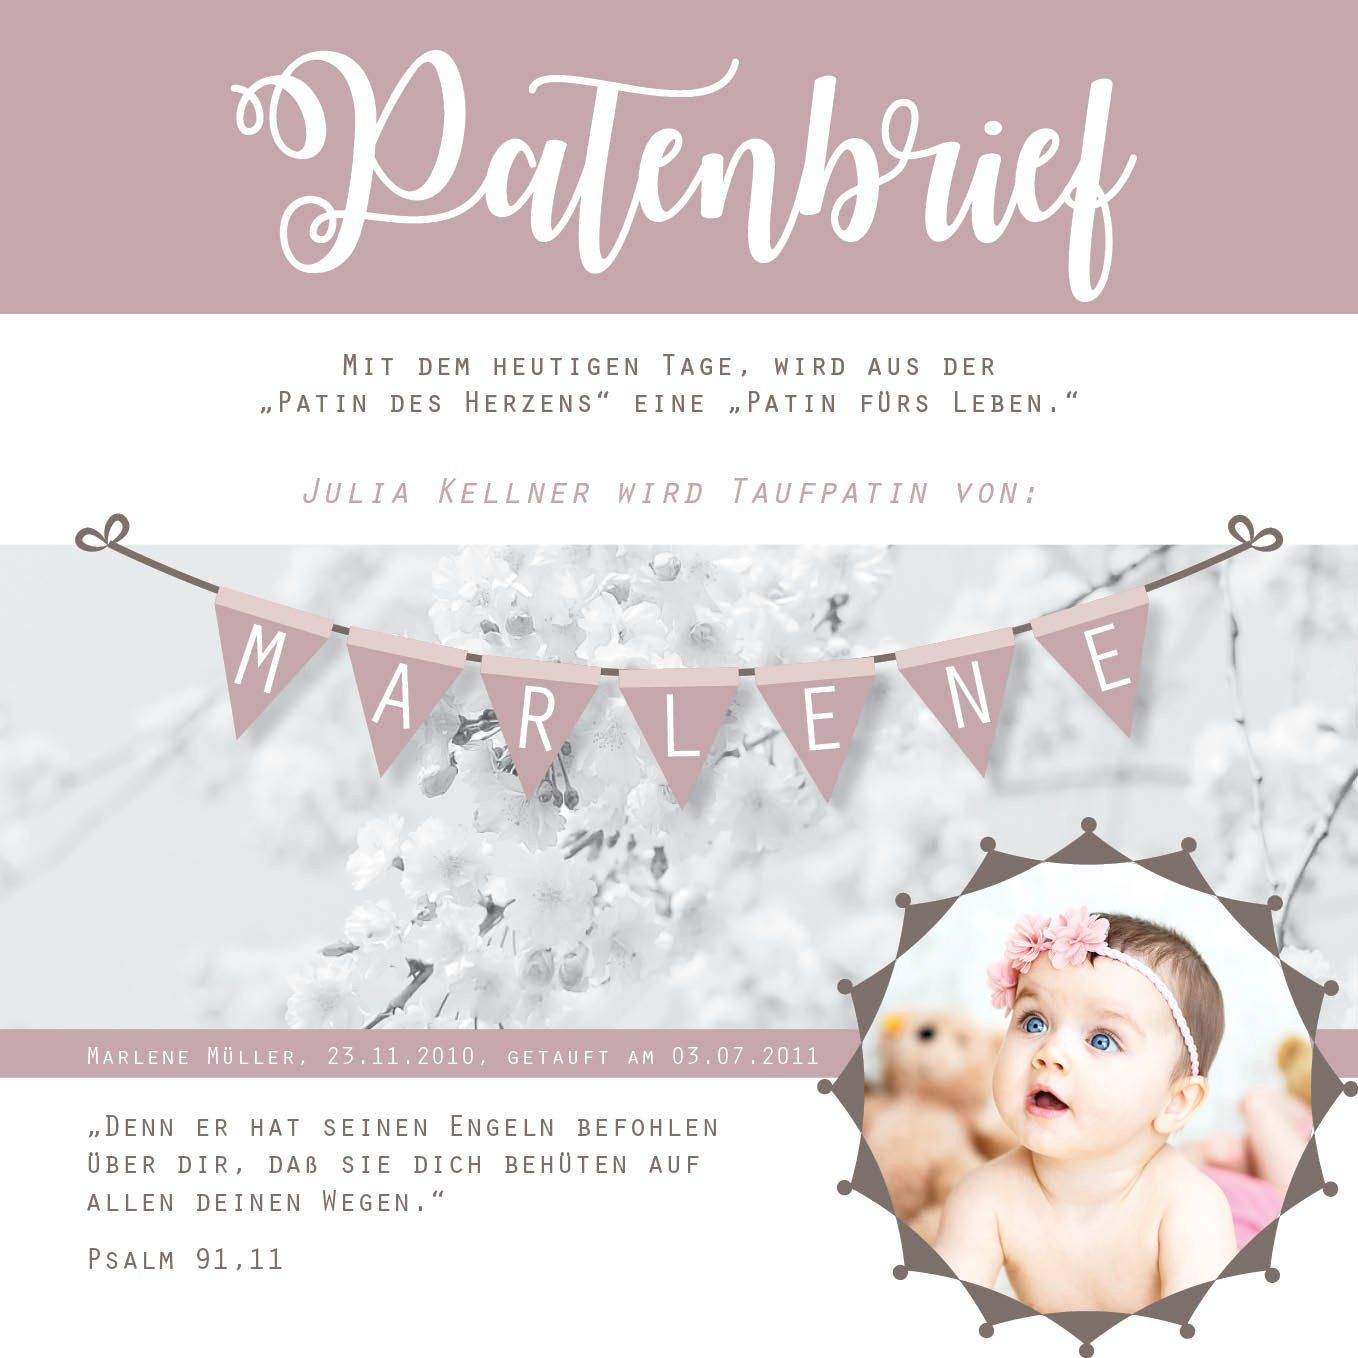 Personalisierter Patenbrief Mit Bild Foto Und Ribba Rahmen Wimpel Altrosa Taufe Pate Patin Picture Letters Ribba Frame Godmother